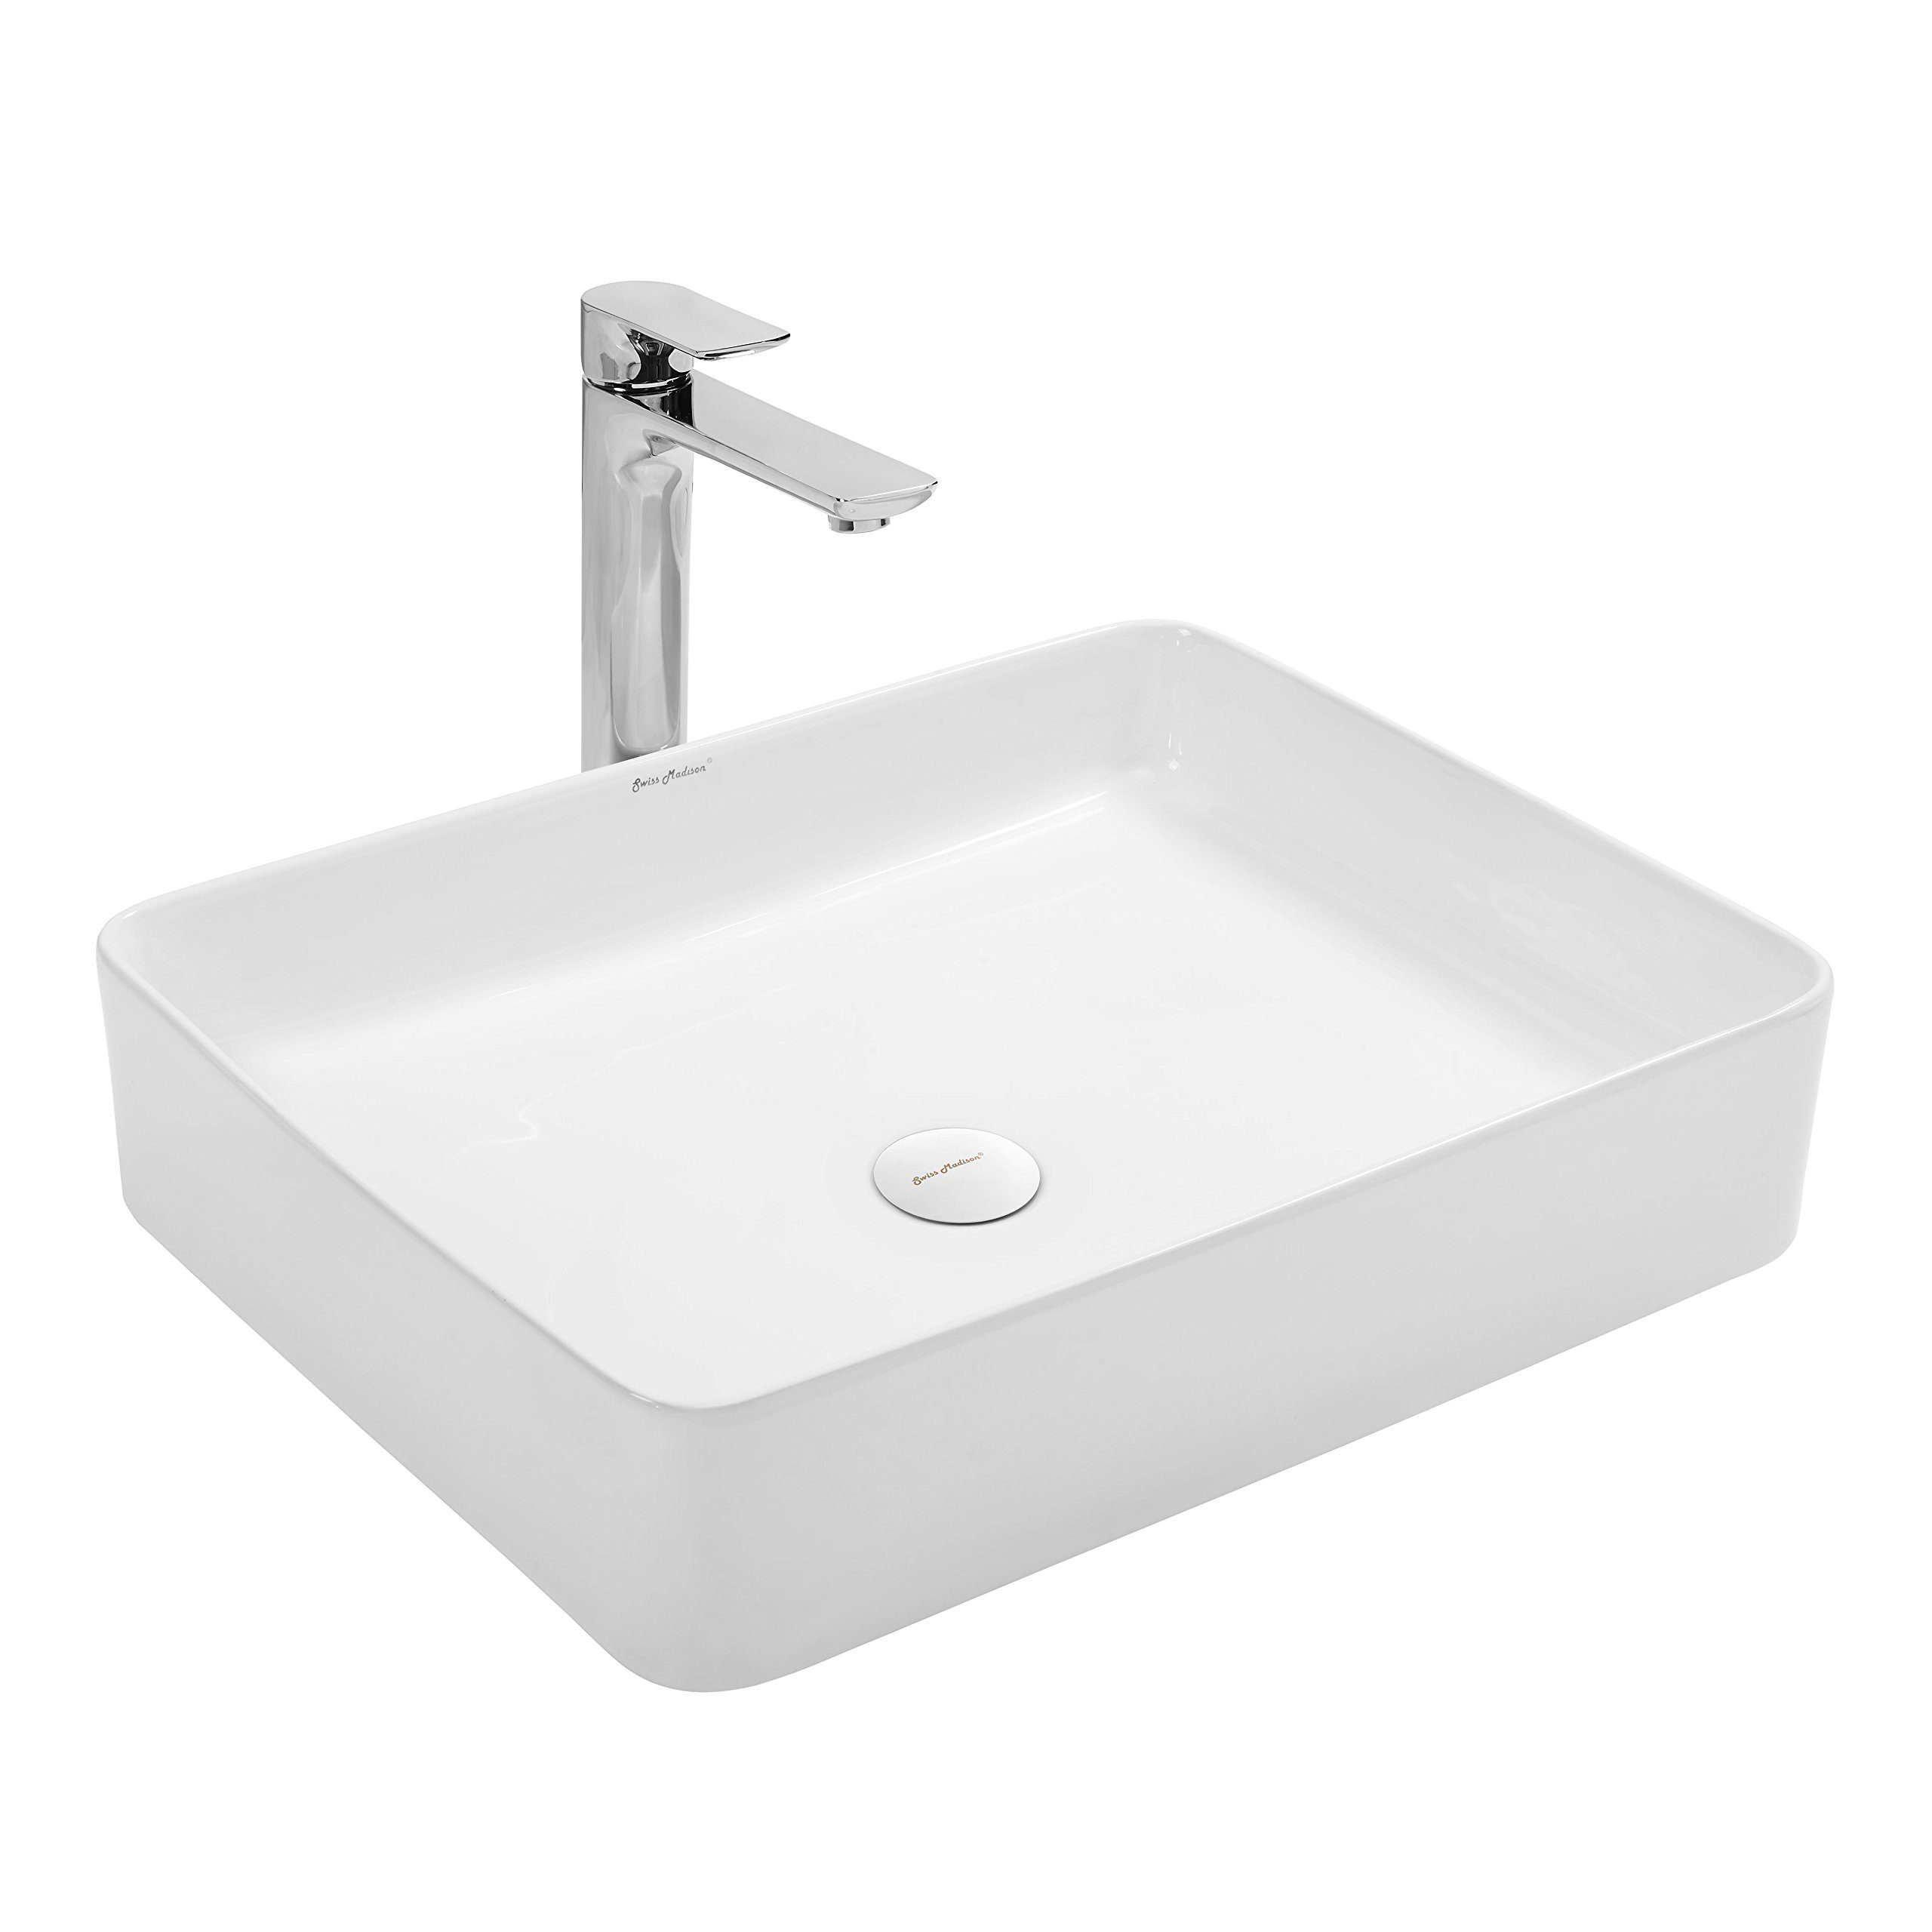 Swiss Madison SM-VS242 Plasir Slender Ceramic Porcelain Rectangular Vessel Vanity Art Basin Bathroom Sink by Swiss Madison